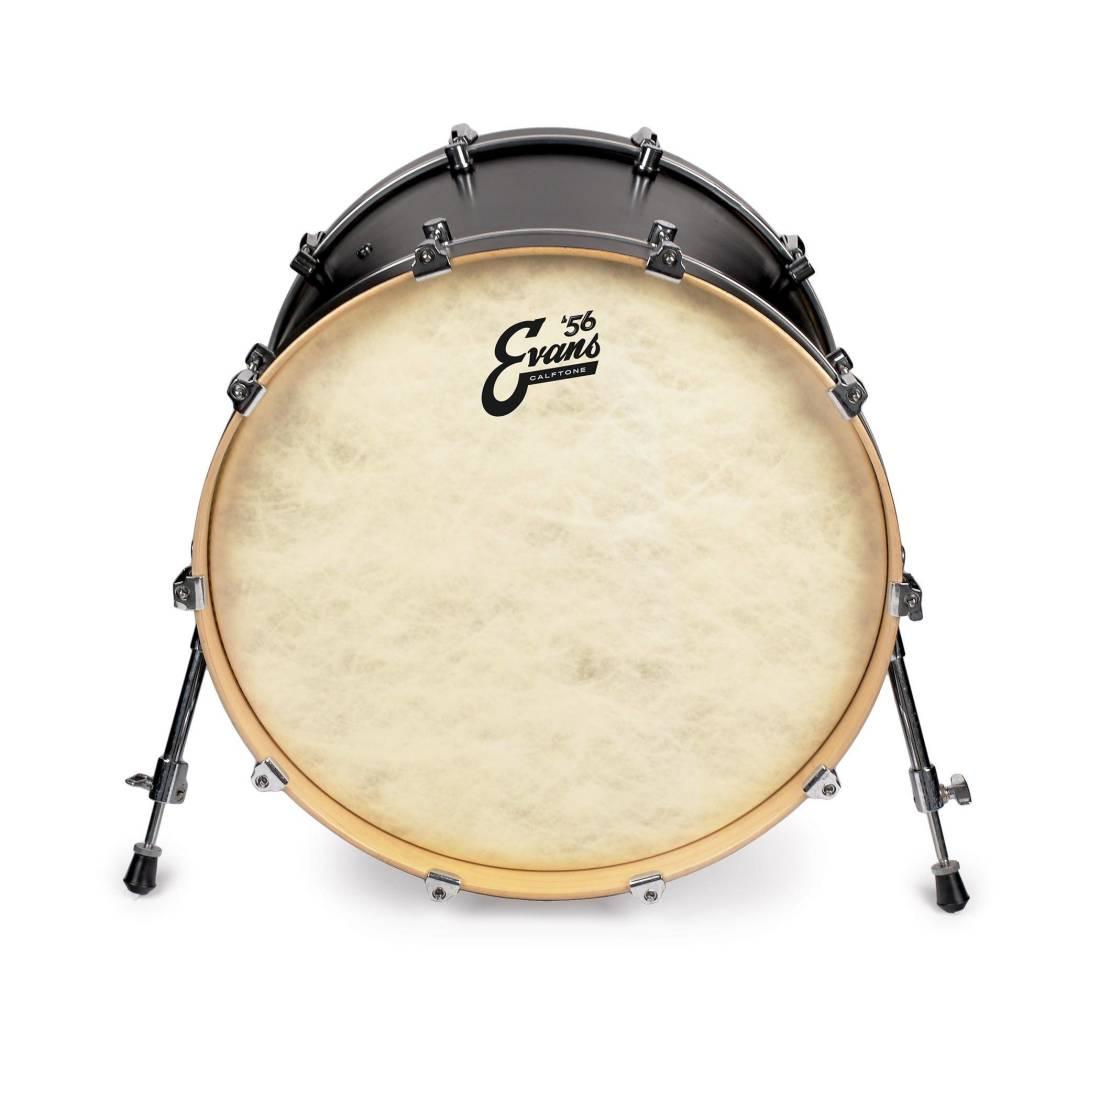 Drum Head Cost : evans calftone bass drum head 18 inch long mcquade musical instruments ~ Russianpoet.info Haus und Dekorationen